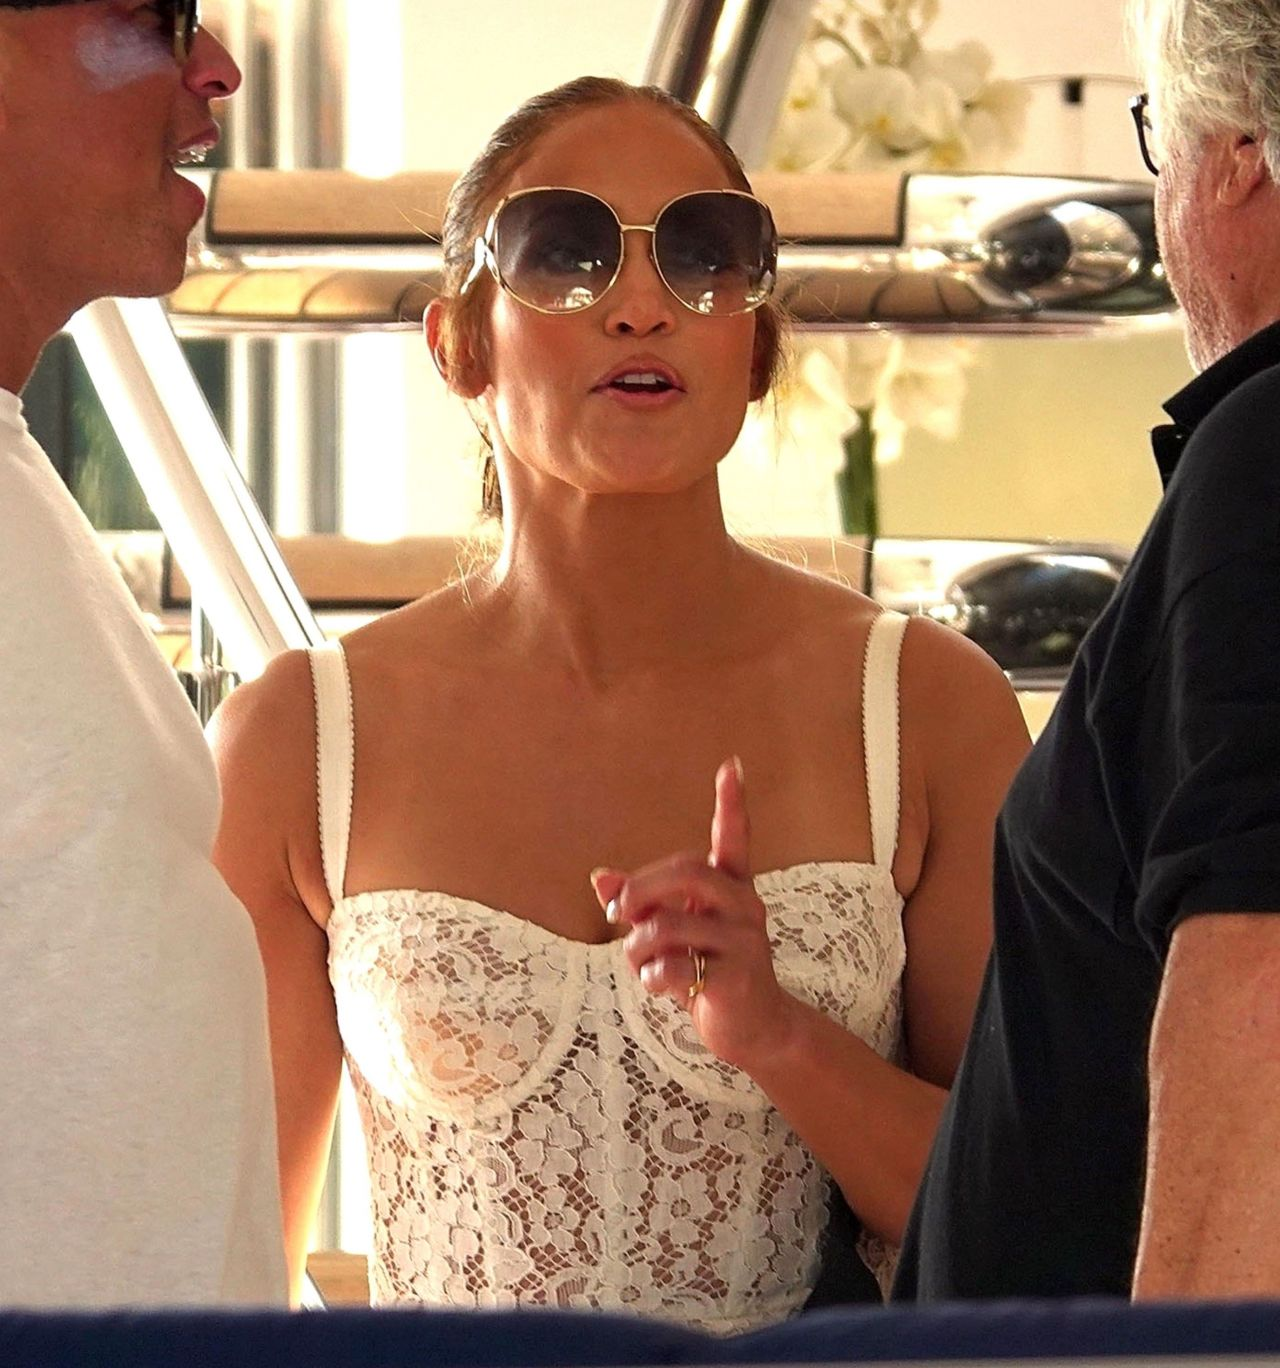 jennifer-lopez-and-alex-rodriguez-on-their-luxury-yacht-in-capri-08-07-2018-1.jpg